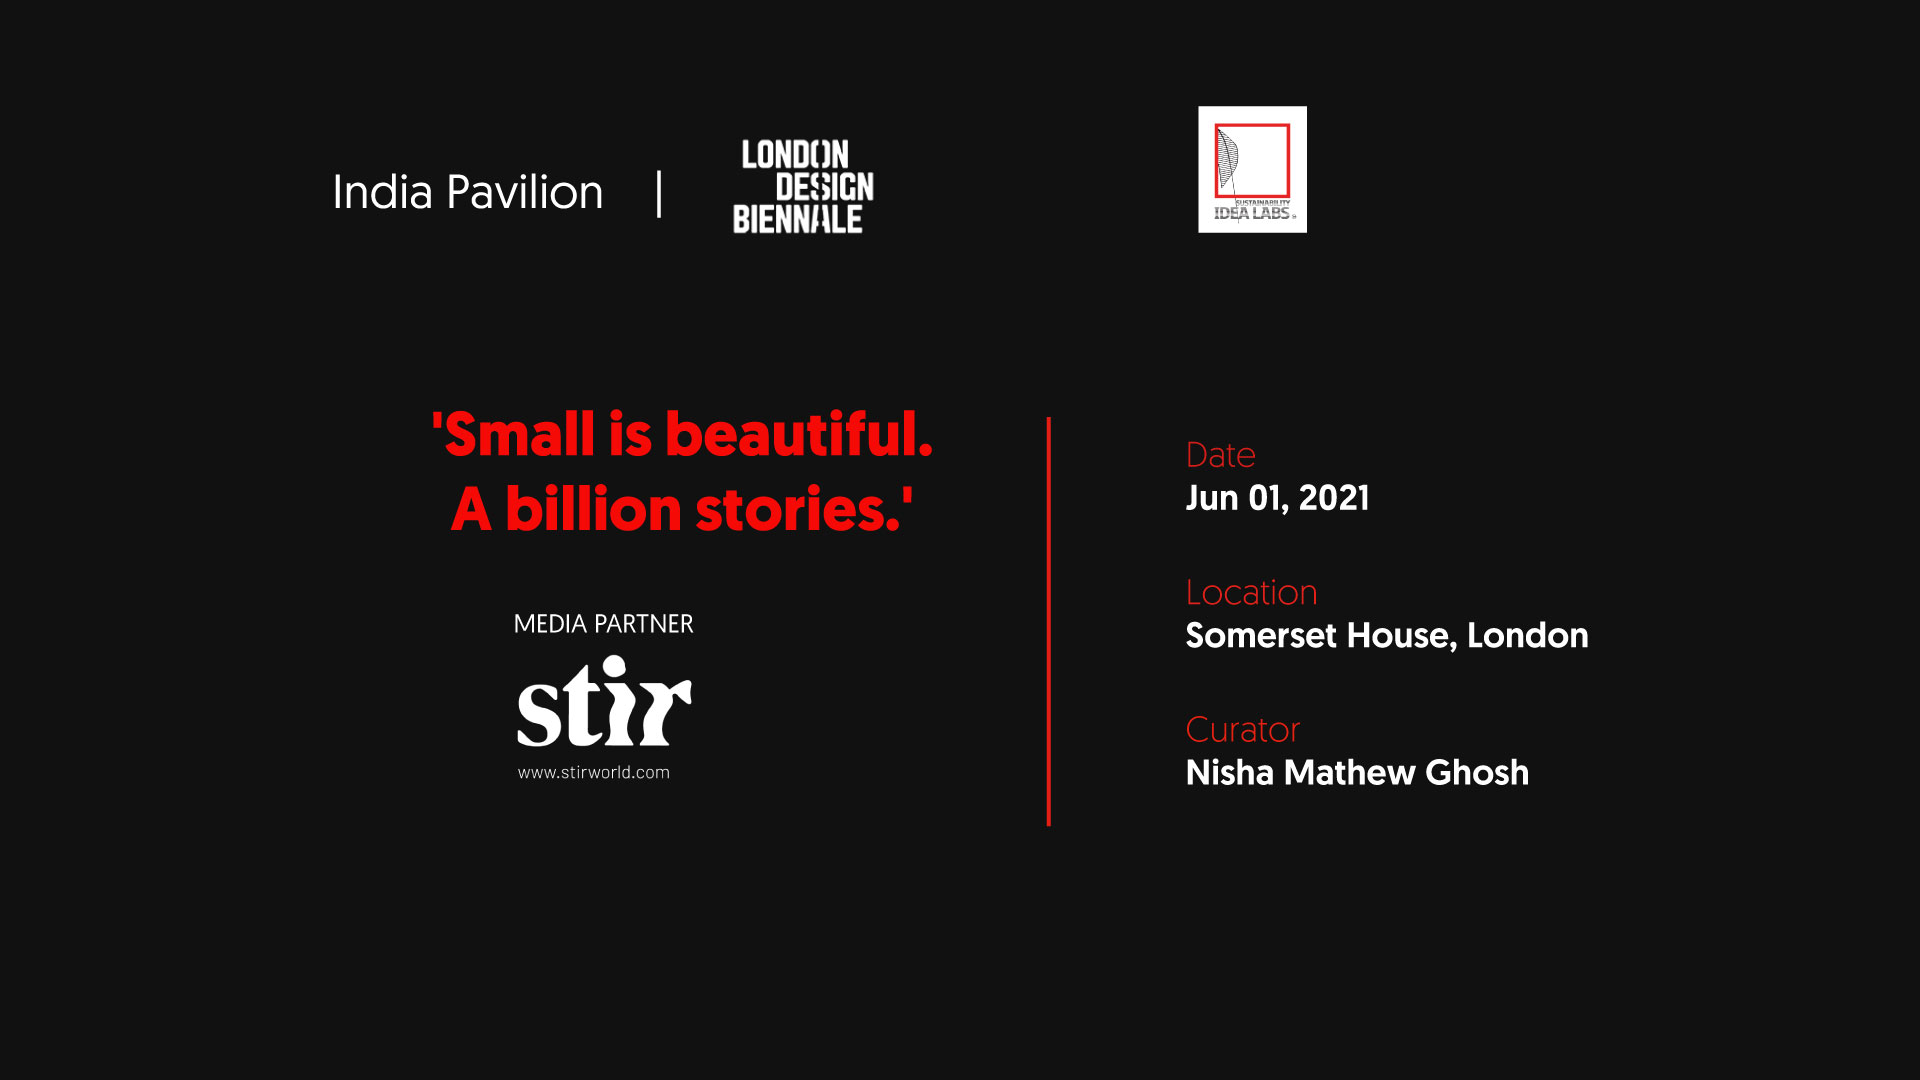 'Small is Beautiful': discover the India Pavilion at the London Design Biennale 2021